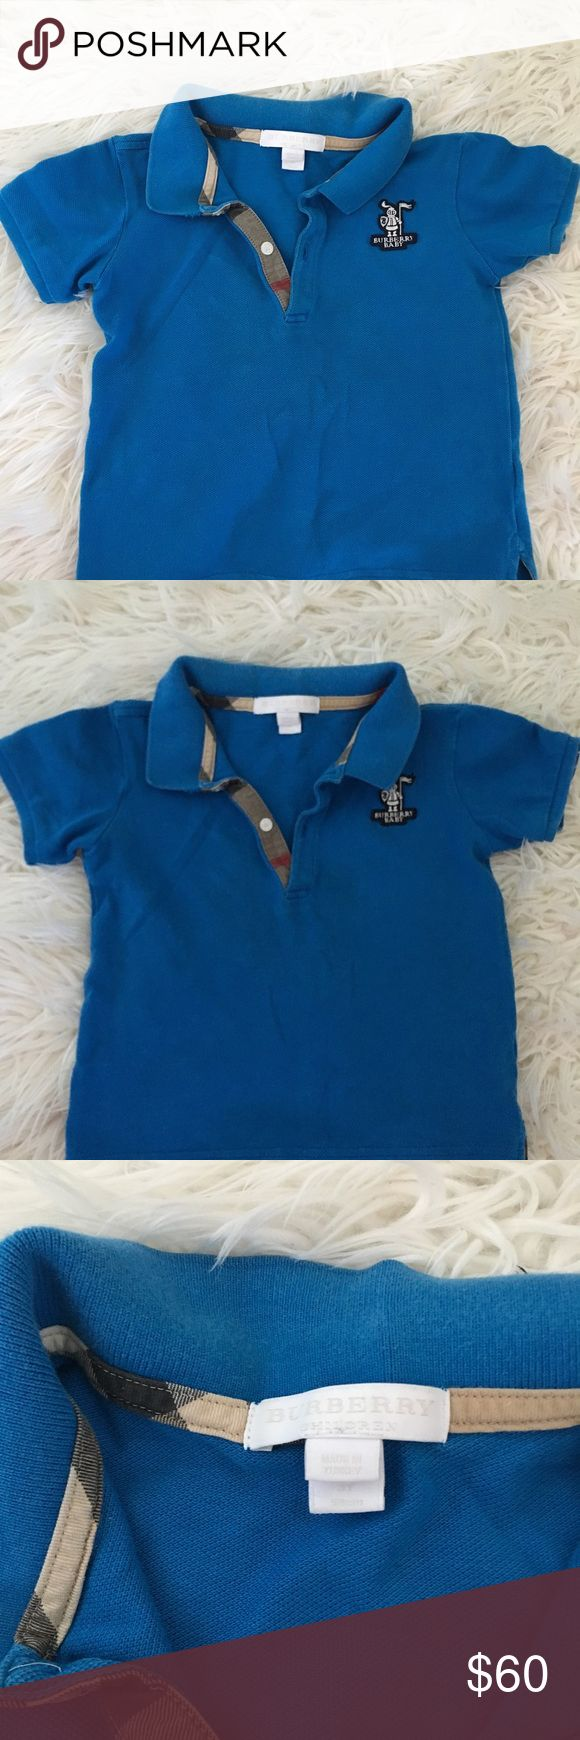 Burberry baby polo Great condition. Worn a handful of times. Size 3Y Burberry Shirts & Tops Polos